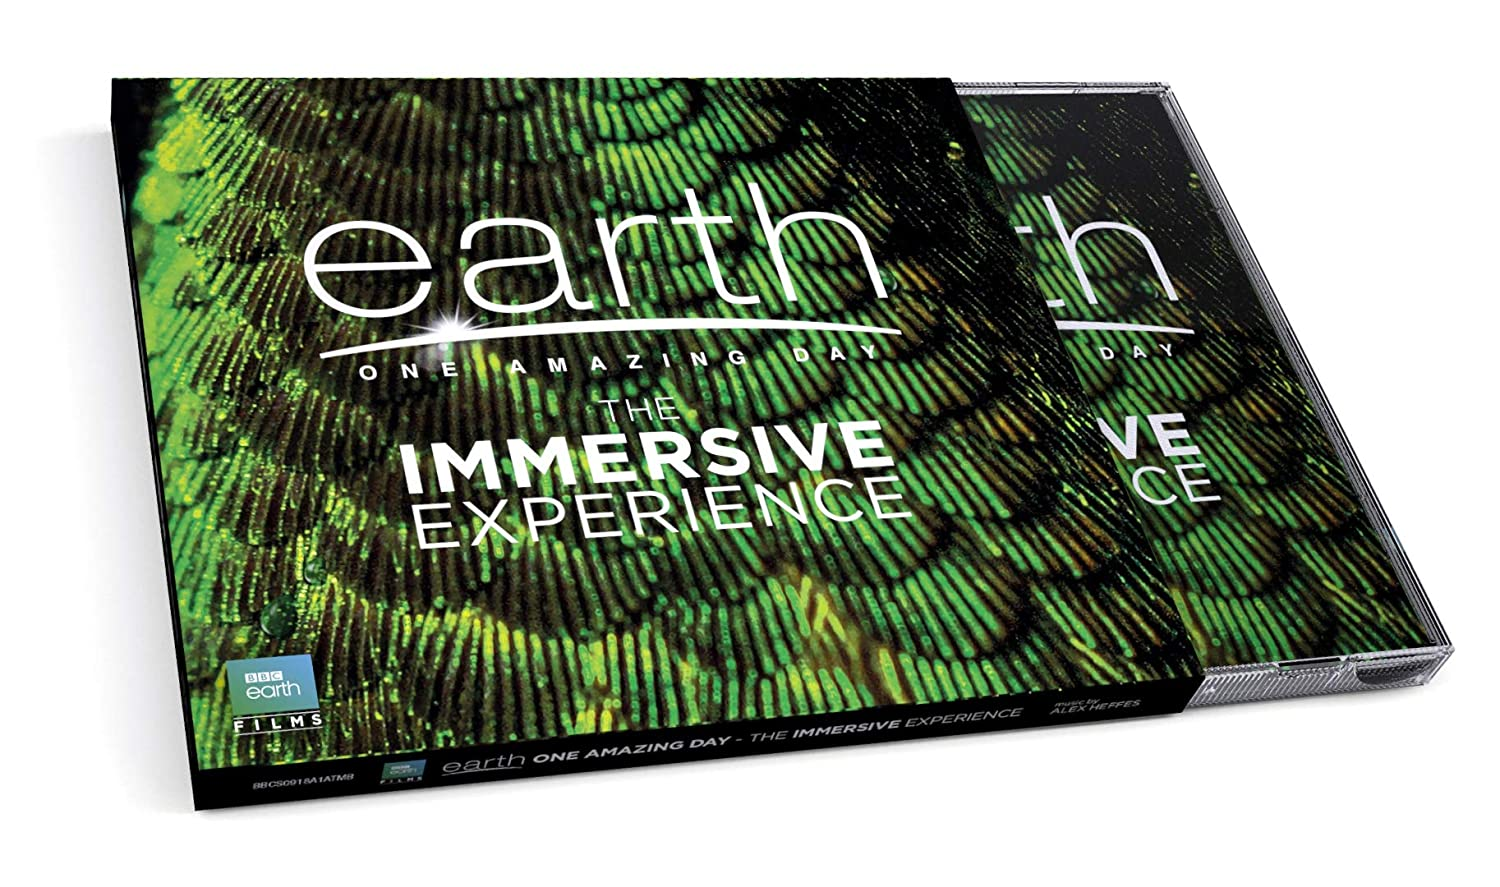 Earth: One Amazing Day - The Immersive Experience (Atmos Edition)